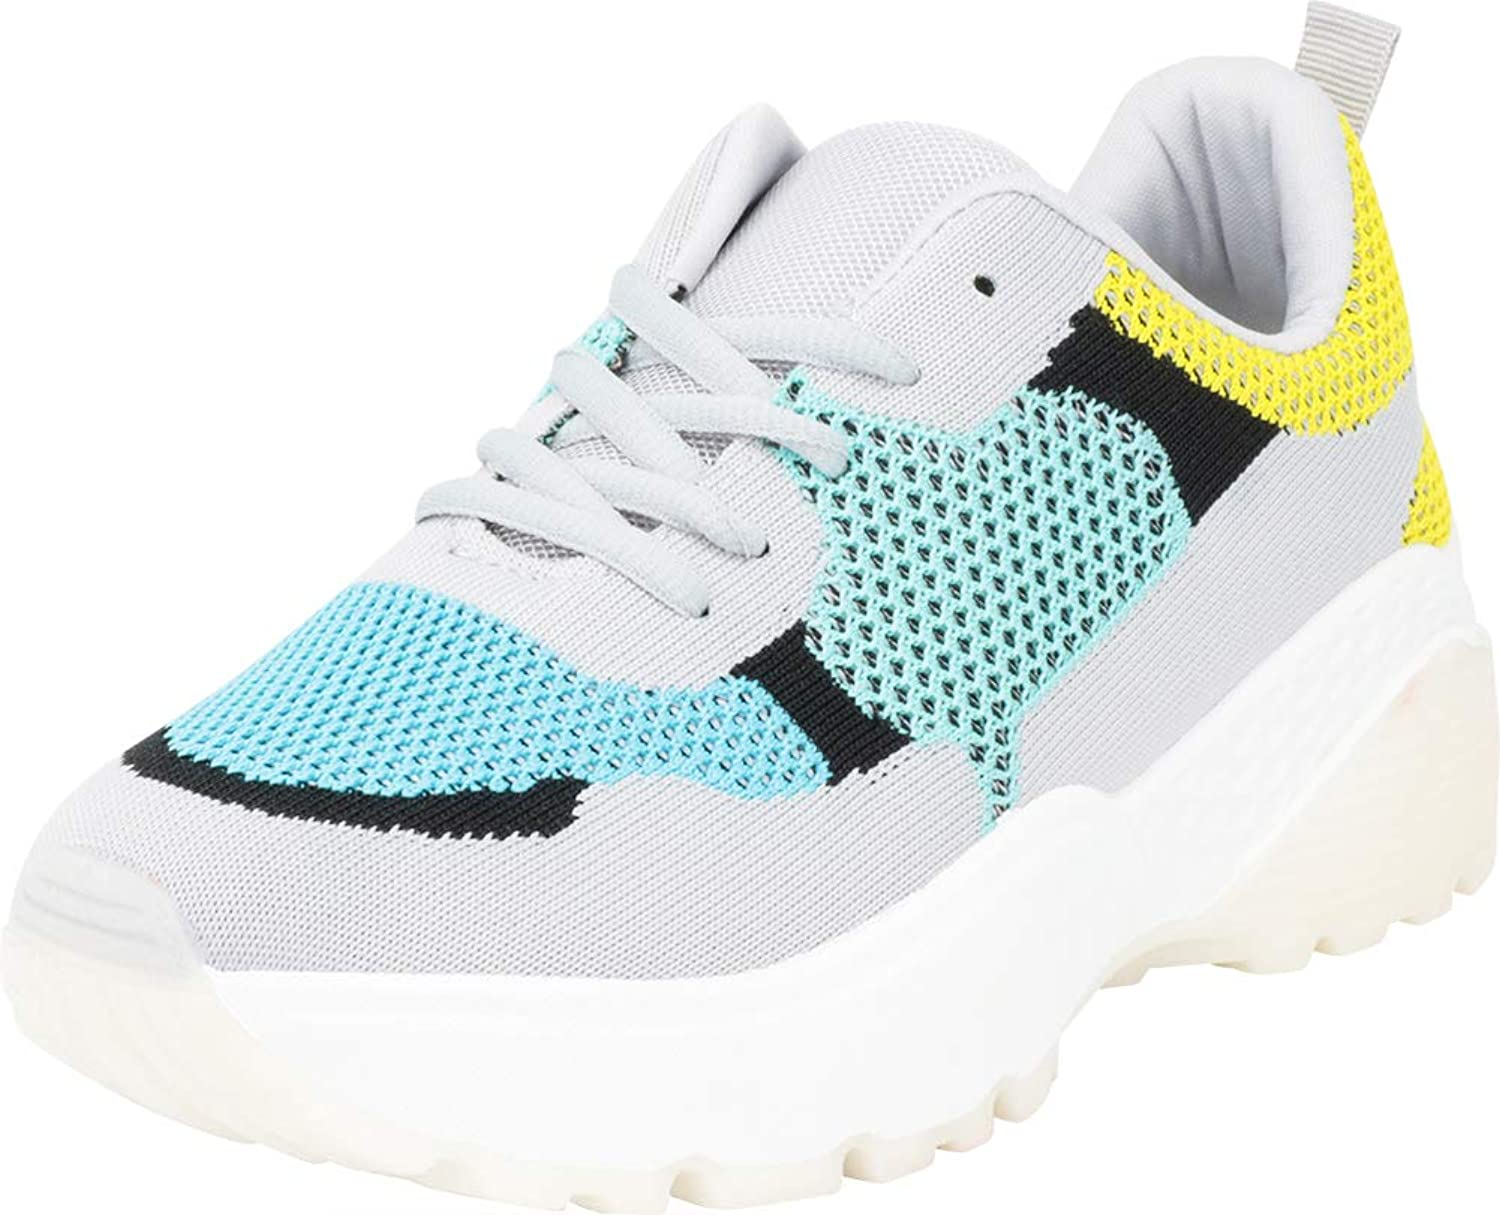 Cambridge Select Women's Retro 90s Ugly Dad Mesh colorblock Chunky Lace-Up Fashion Sneaker